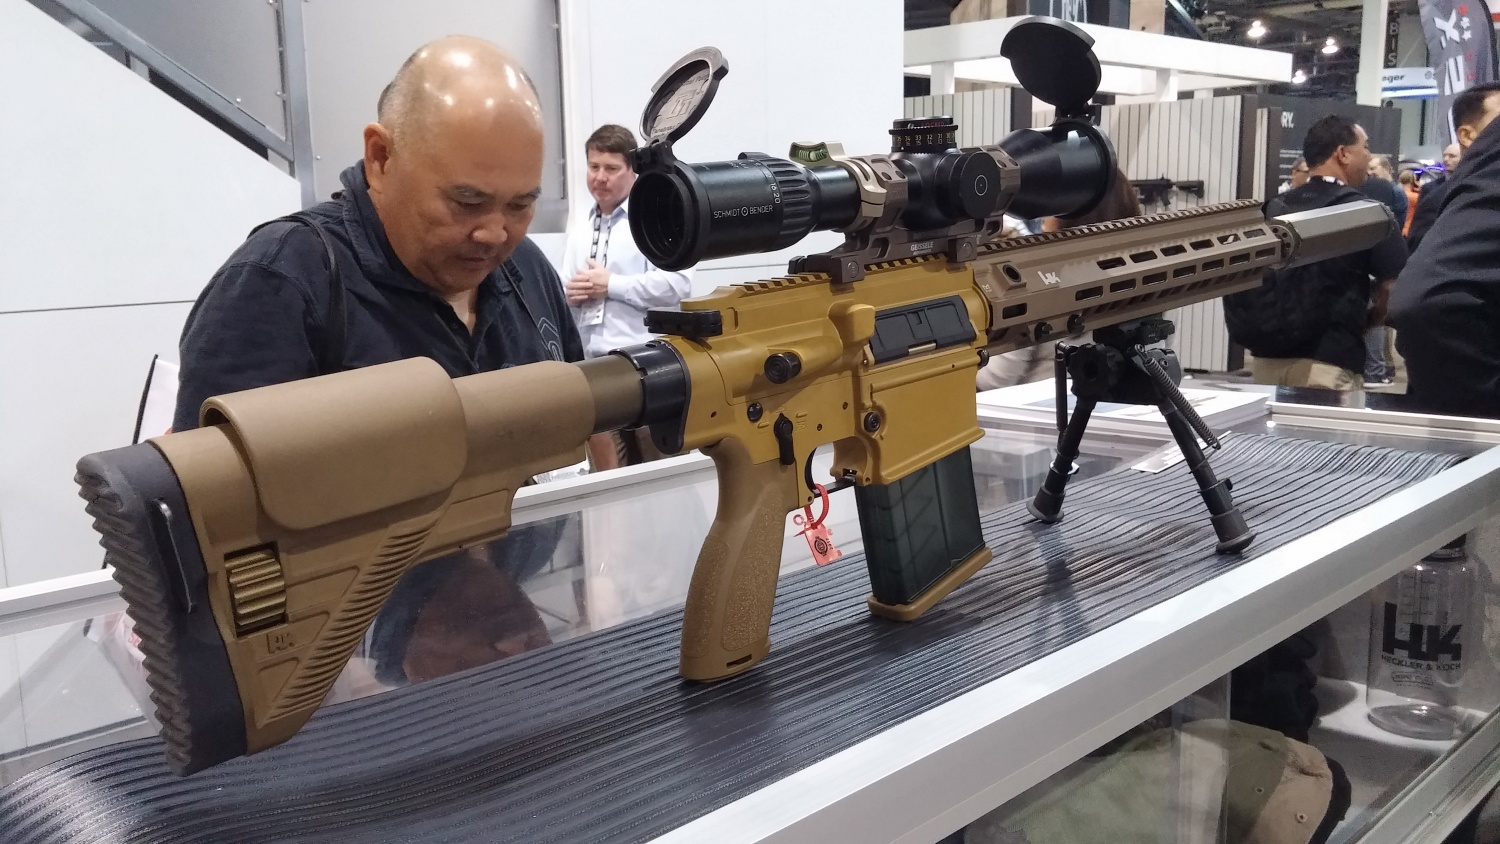 HK Shows Off the US Army's M110A1 CSASS Compact Sniper ... M110 Sniper Rifle Suppressed